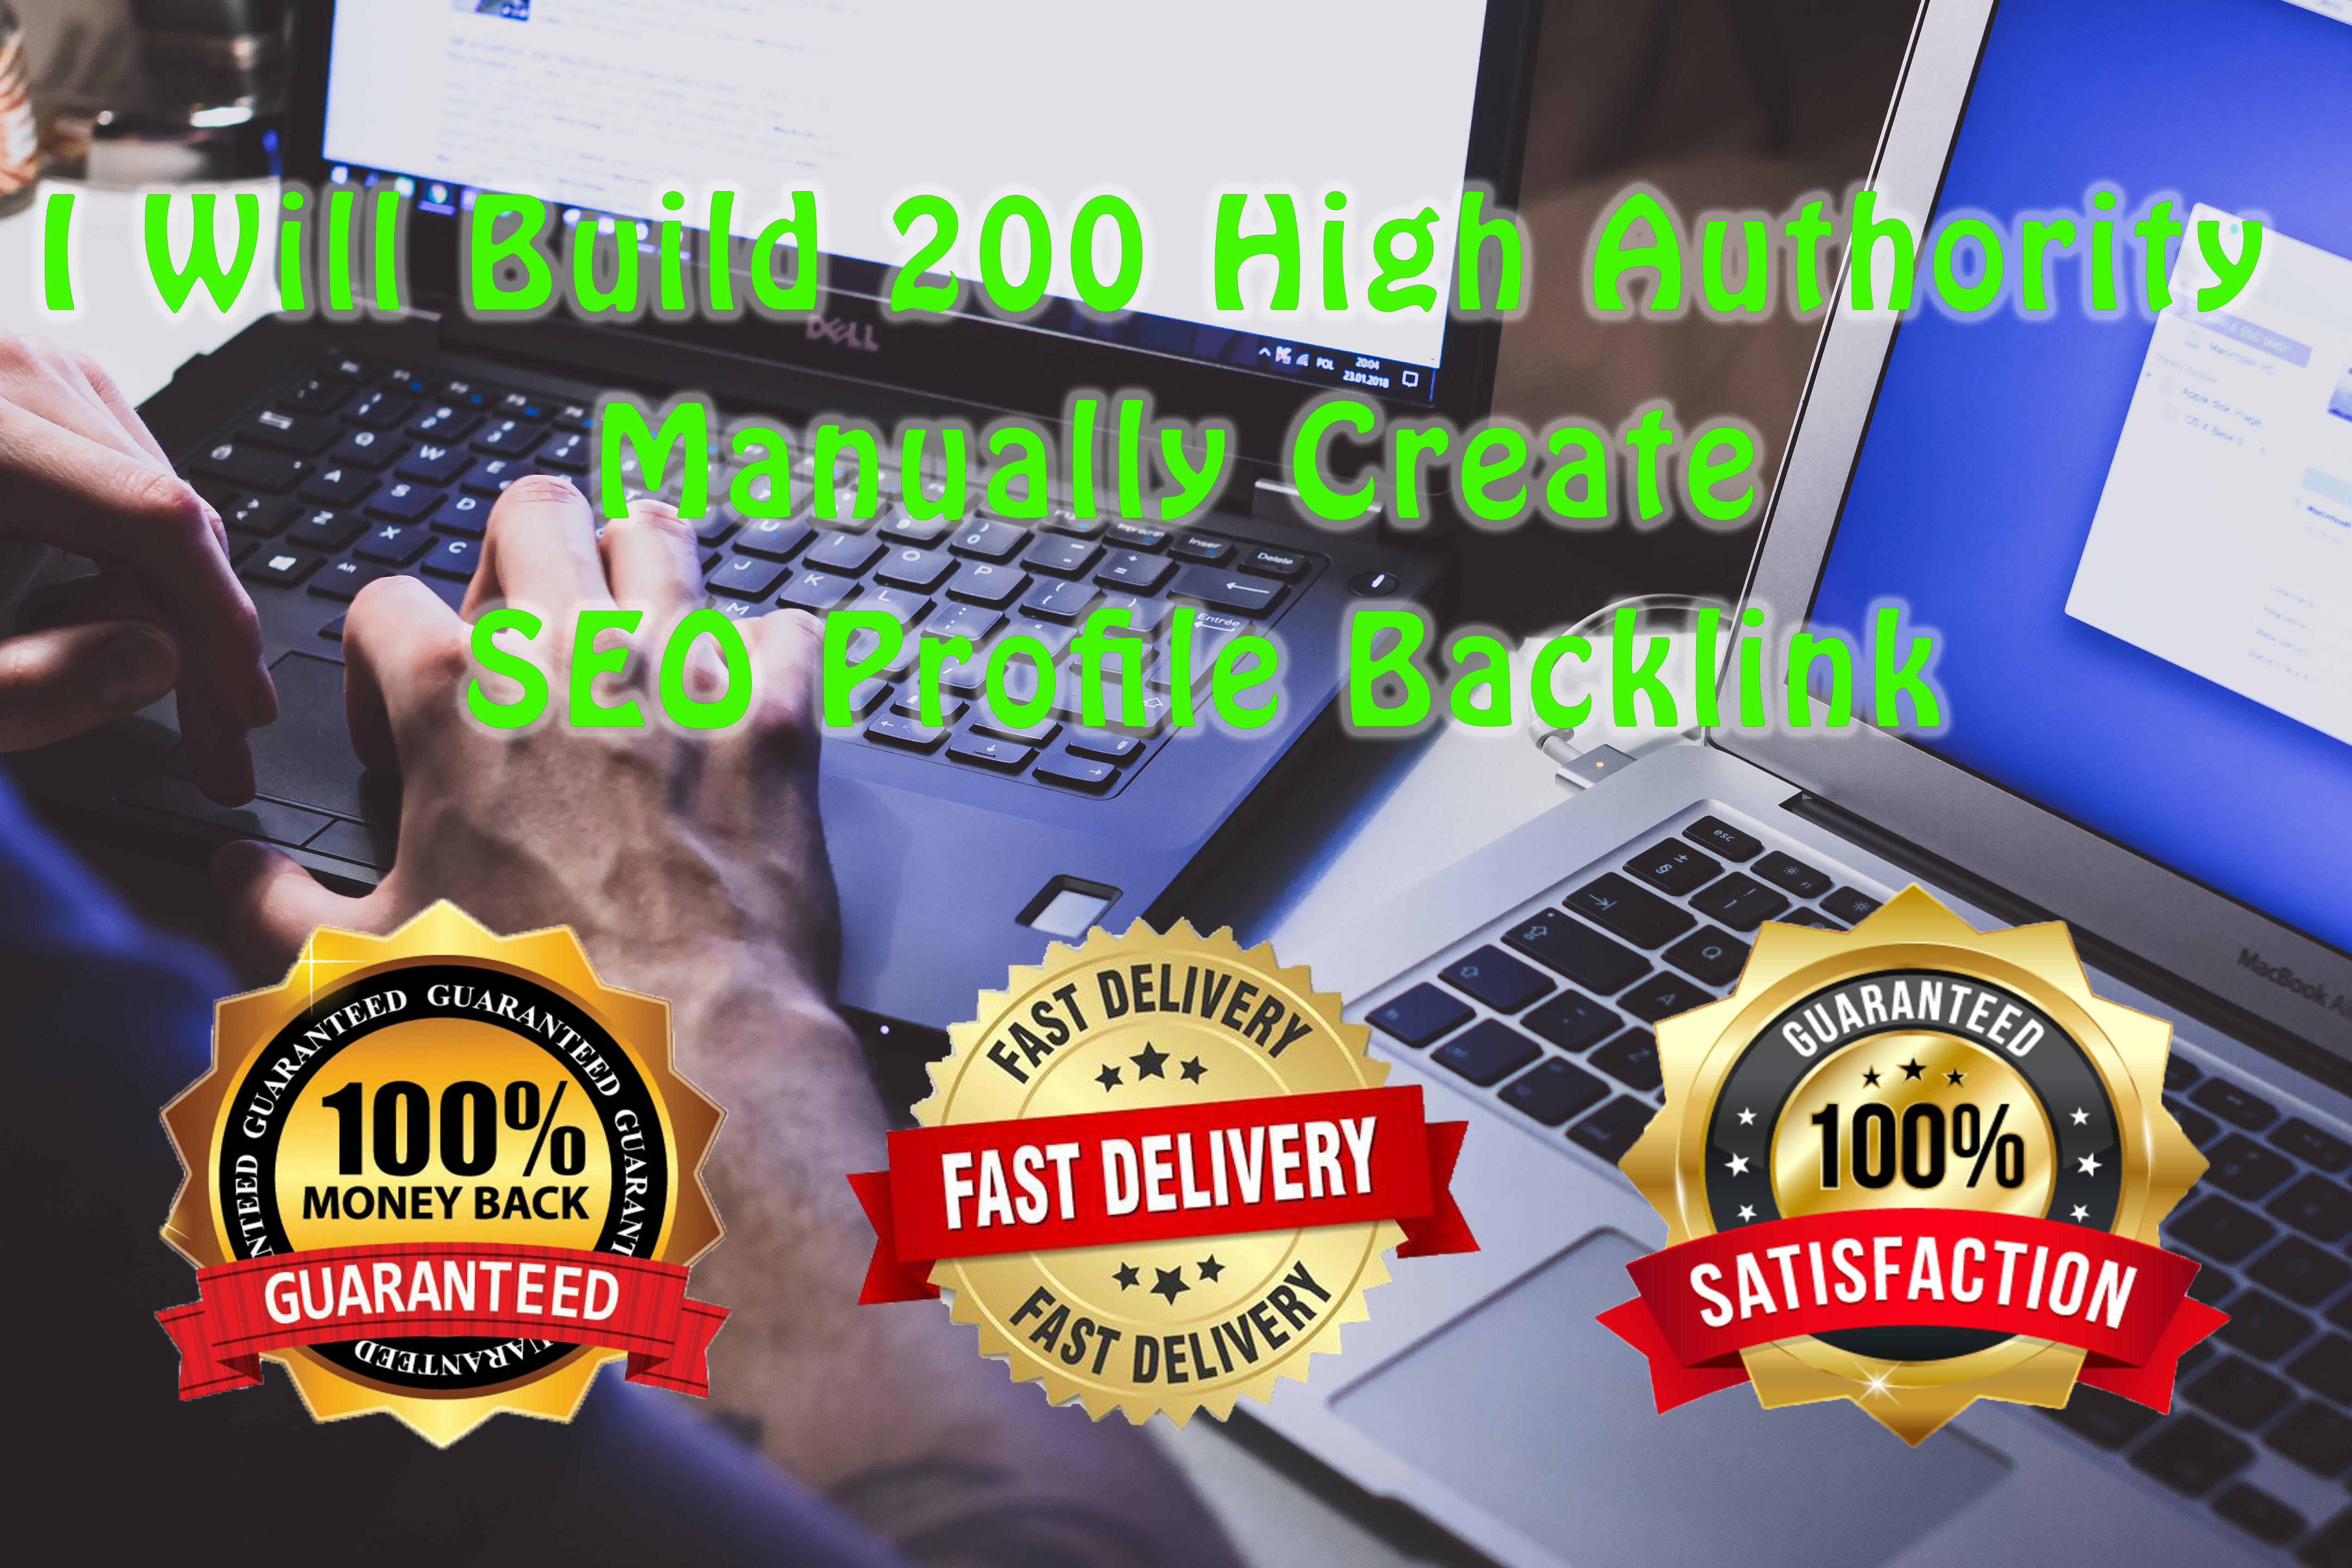 I Will Build 200 High Authority Manually Create SEO Profile Backlink